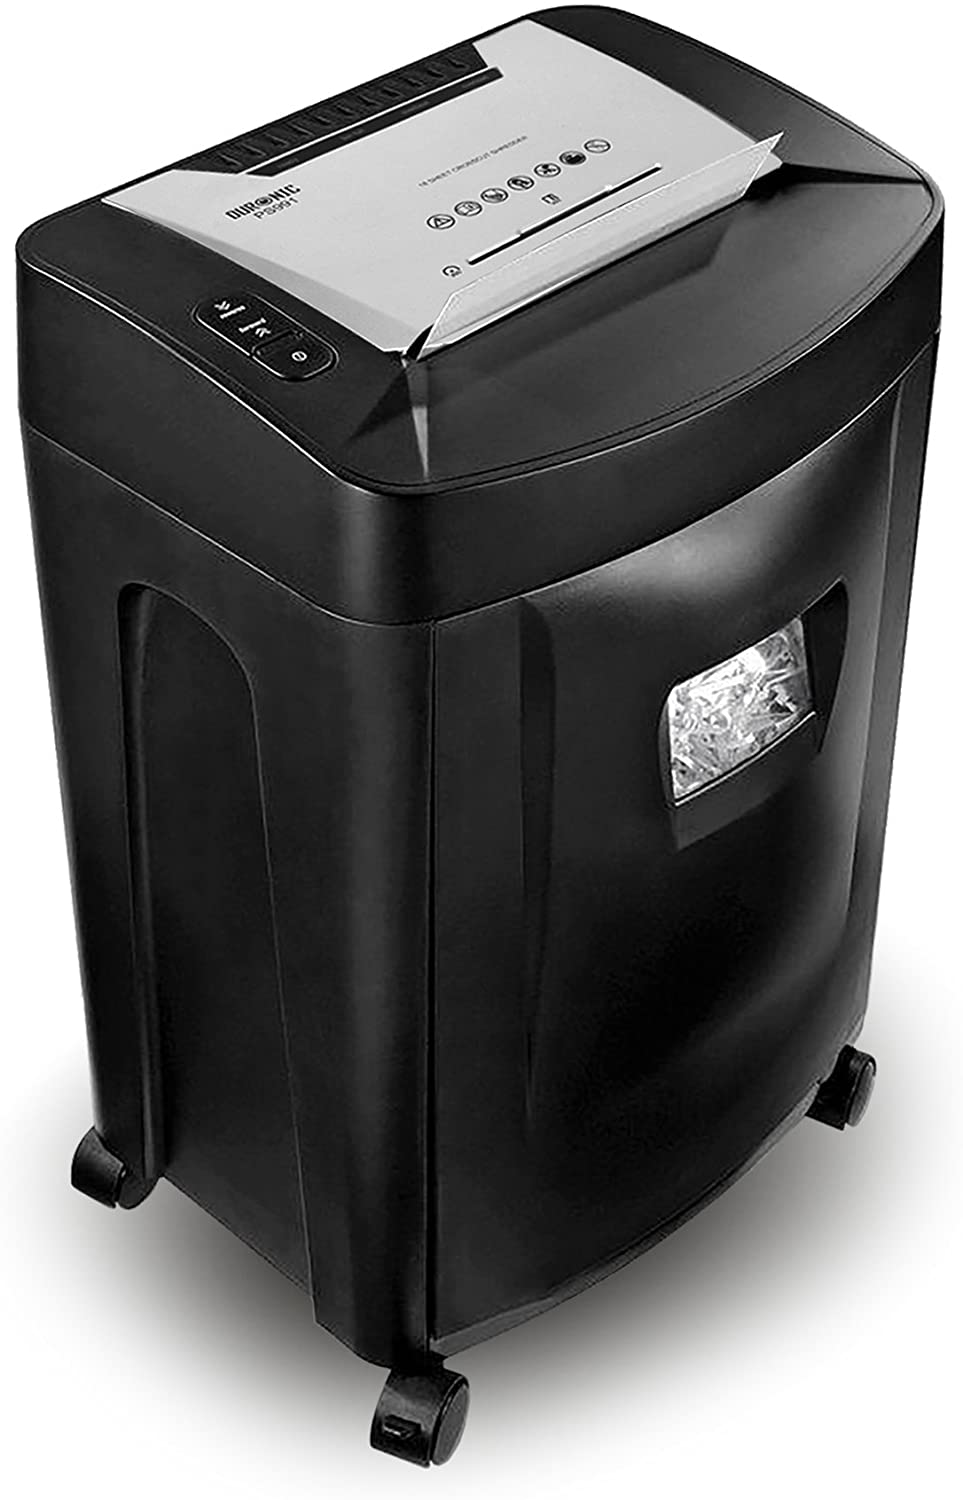 Duronic Paper Shredder PS991 18 X A4 Sheets at a Time Destroys Credit Cards & CDs Cross Cut Electric Shredder uk reviews